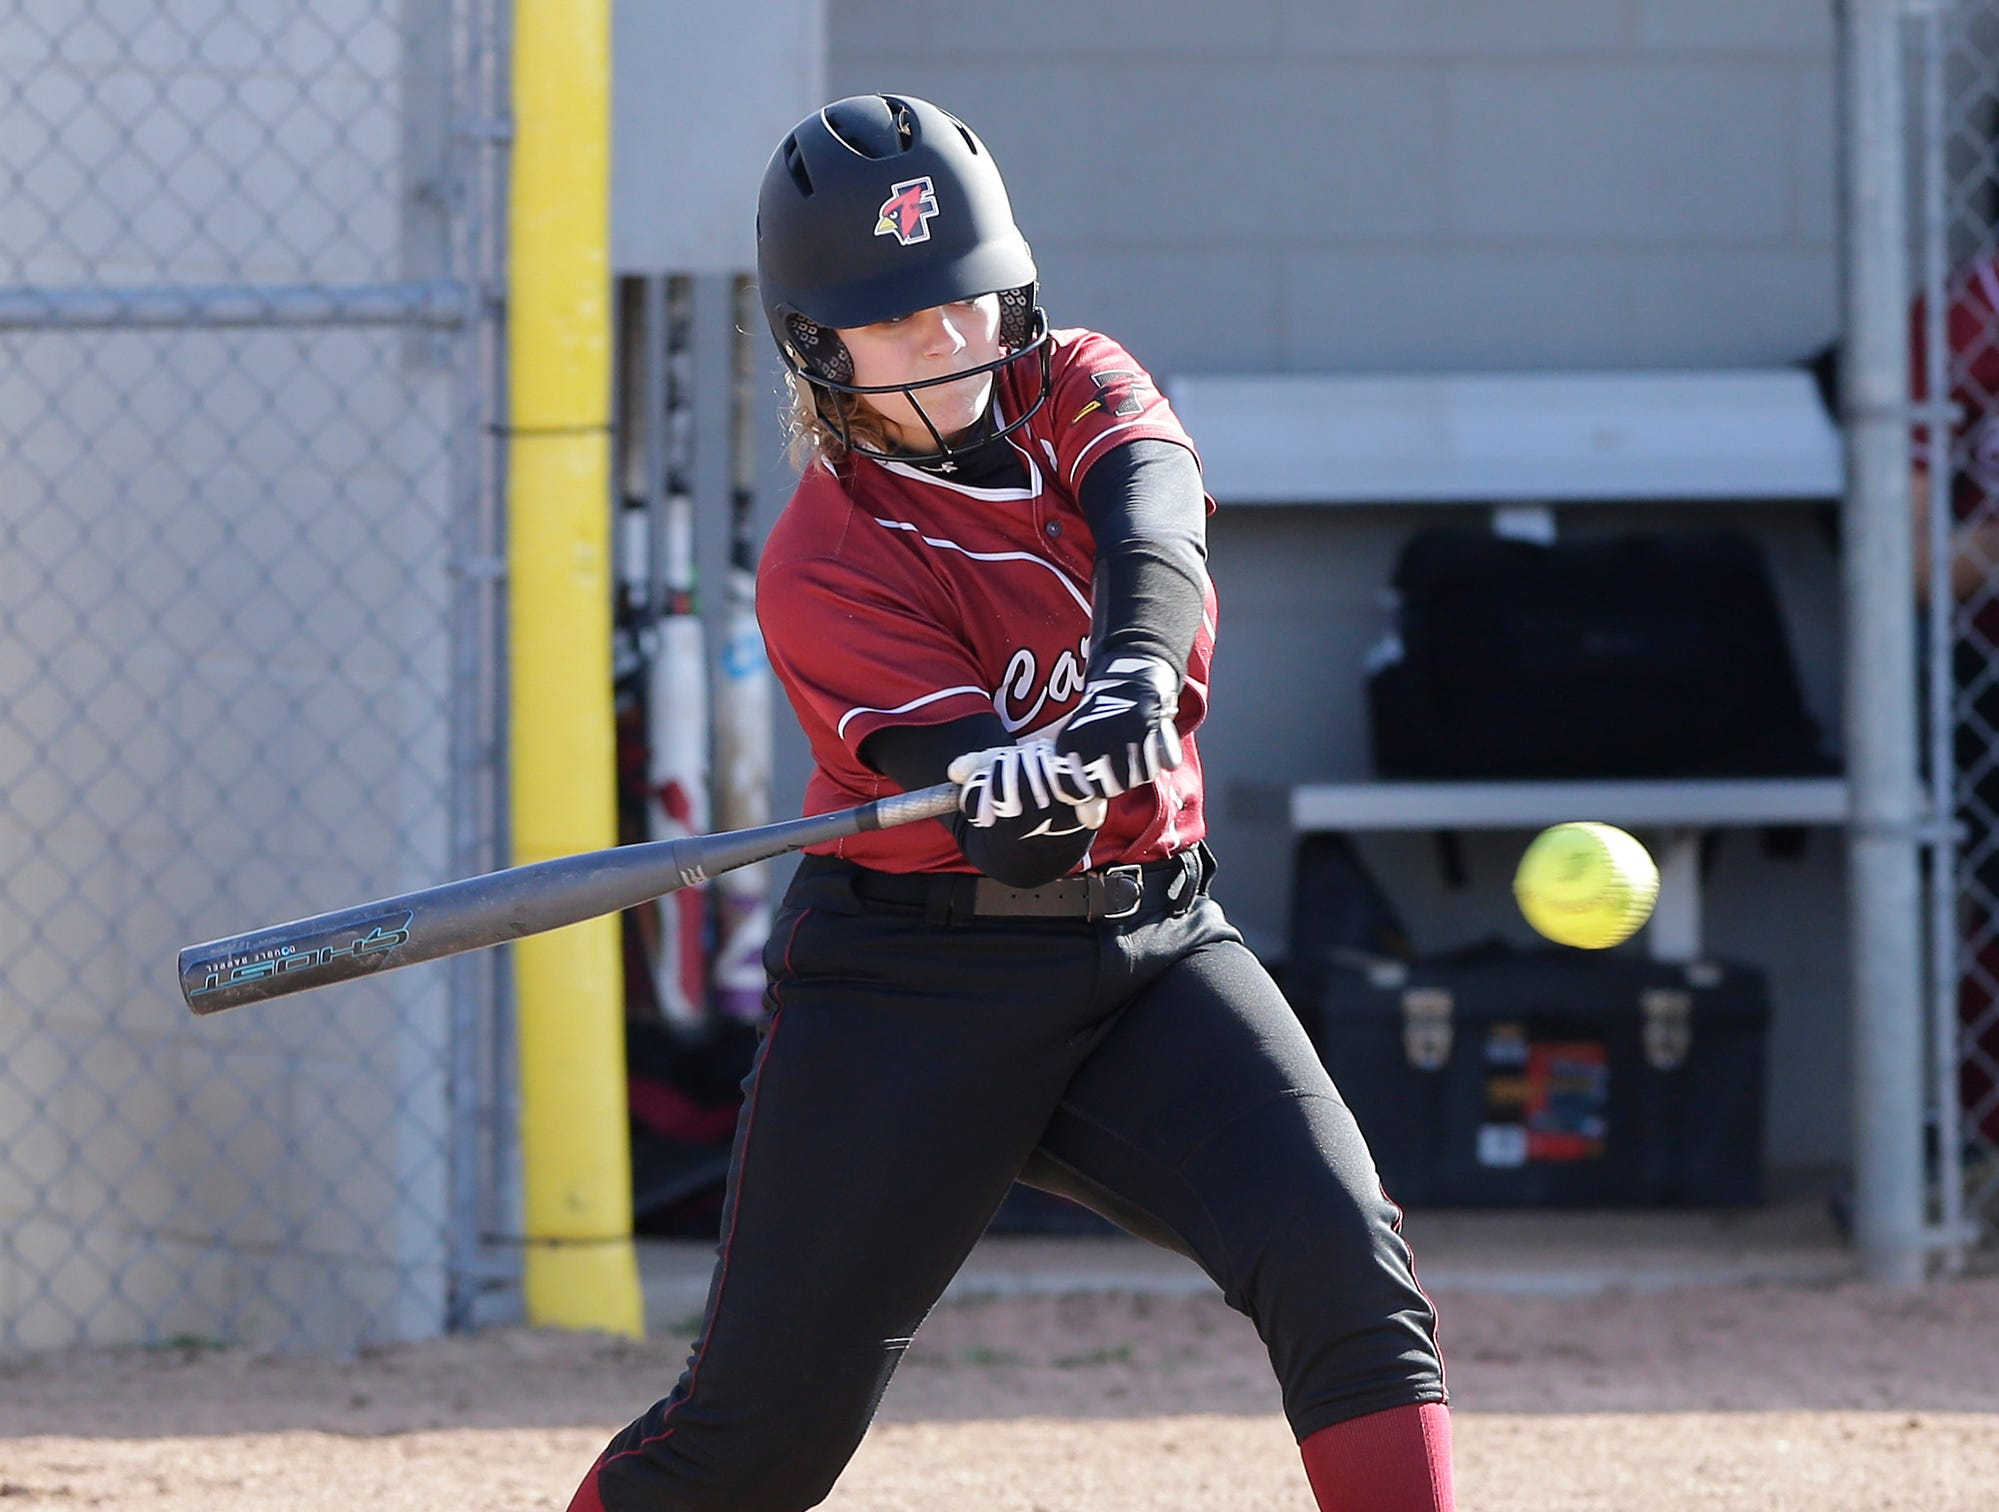 Fond du Lac High School softball's Emilee Simon swings at a pitch against Oshkosh North High School during their game Friday, April 26, 2019 in Fond du Lac, Wis. Doug Raflik/USA TODAY NETWORK-Wisconsin